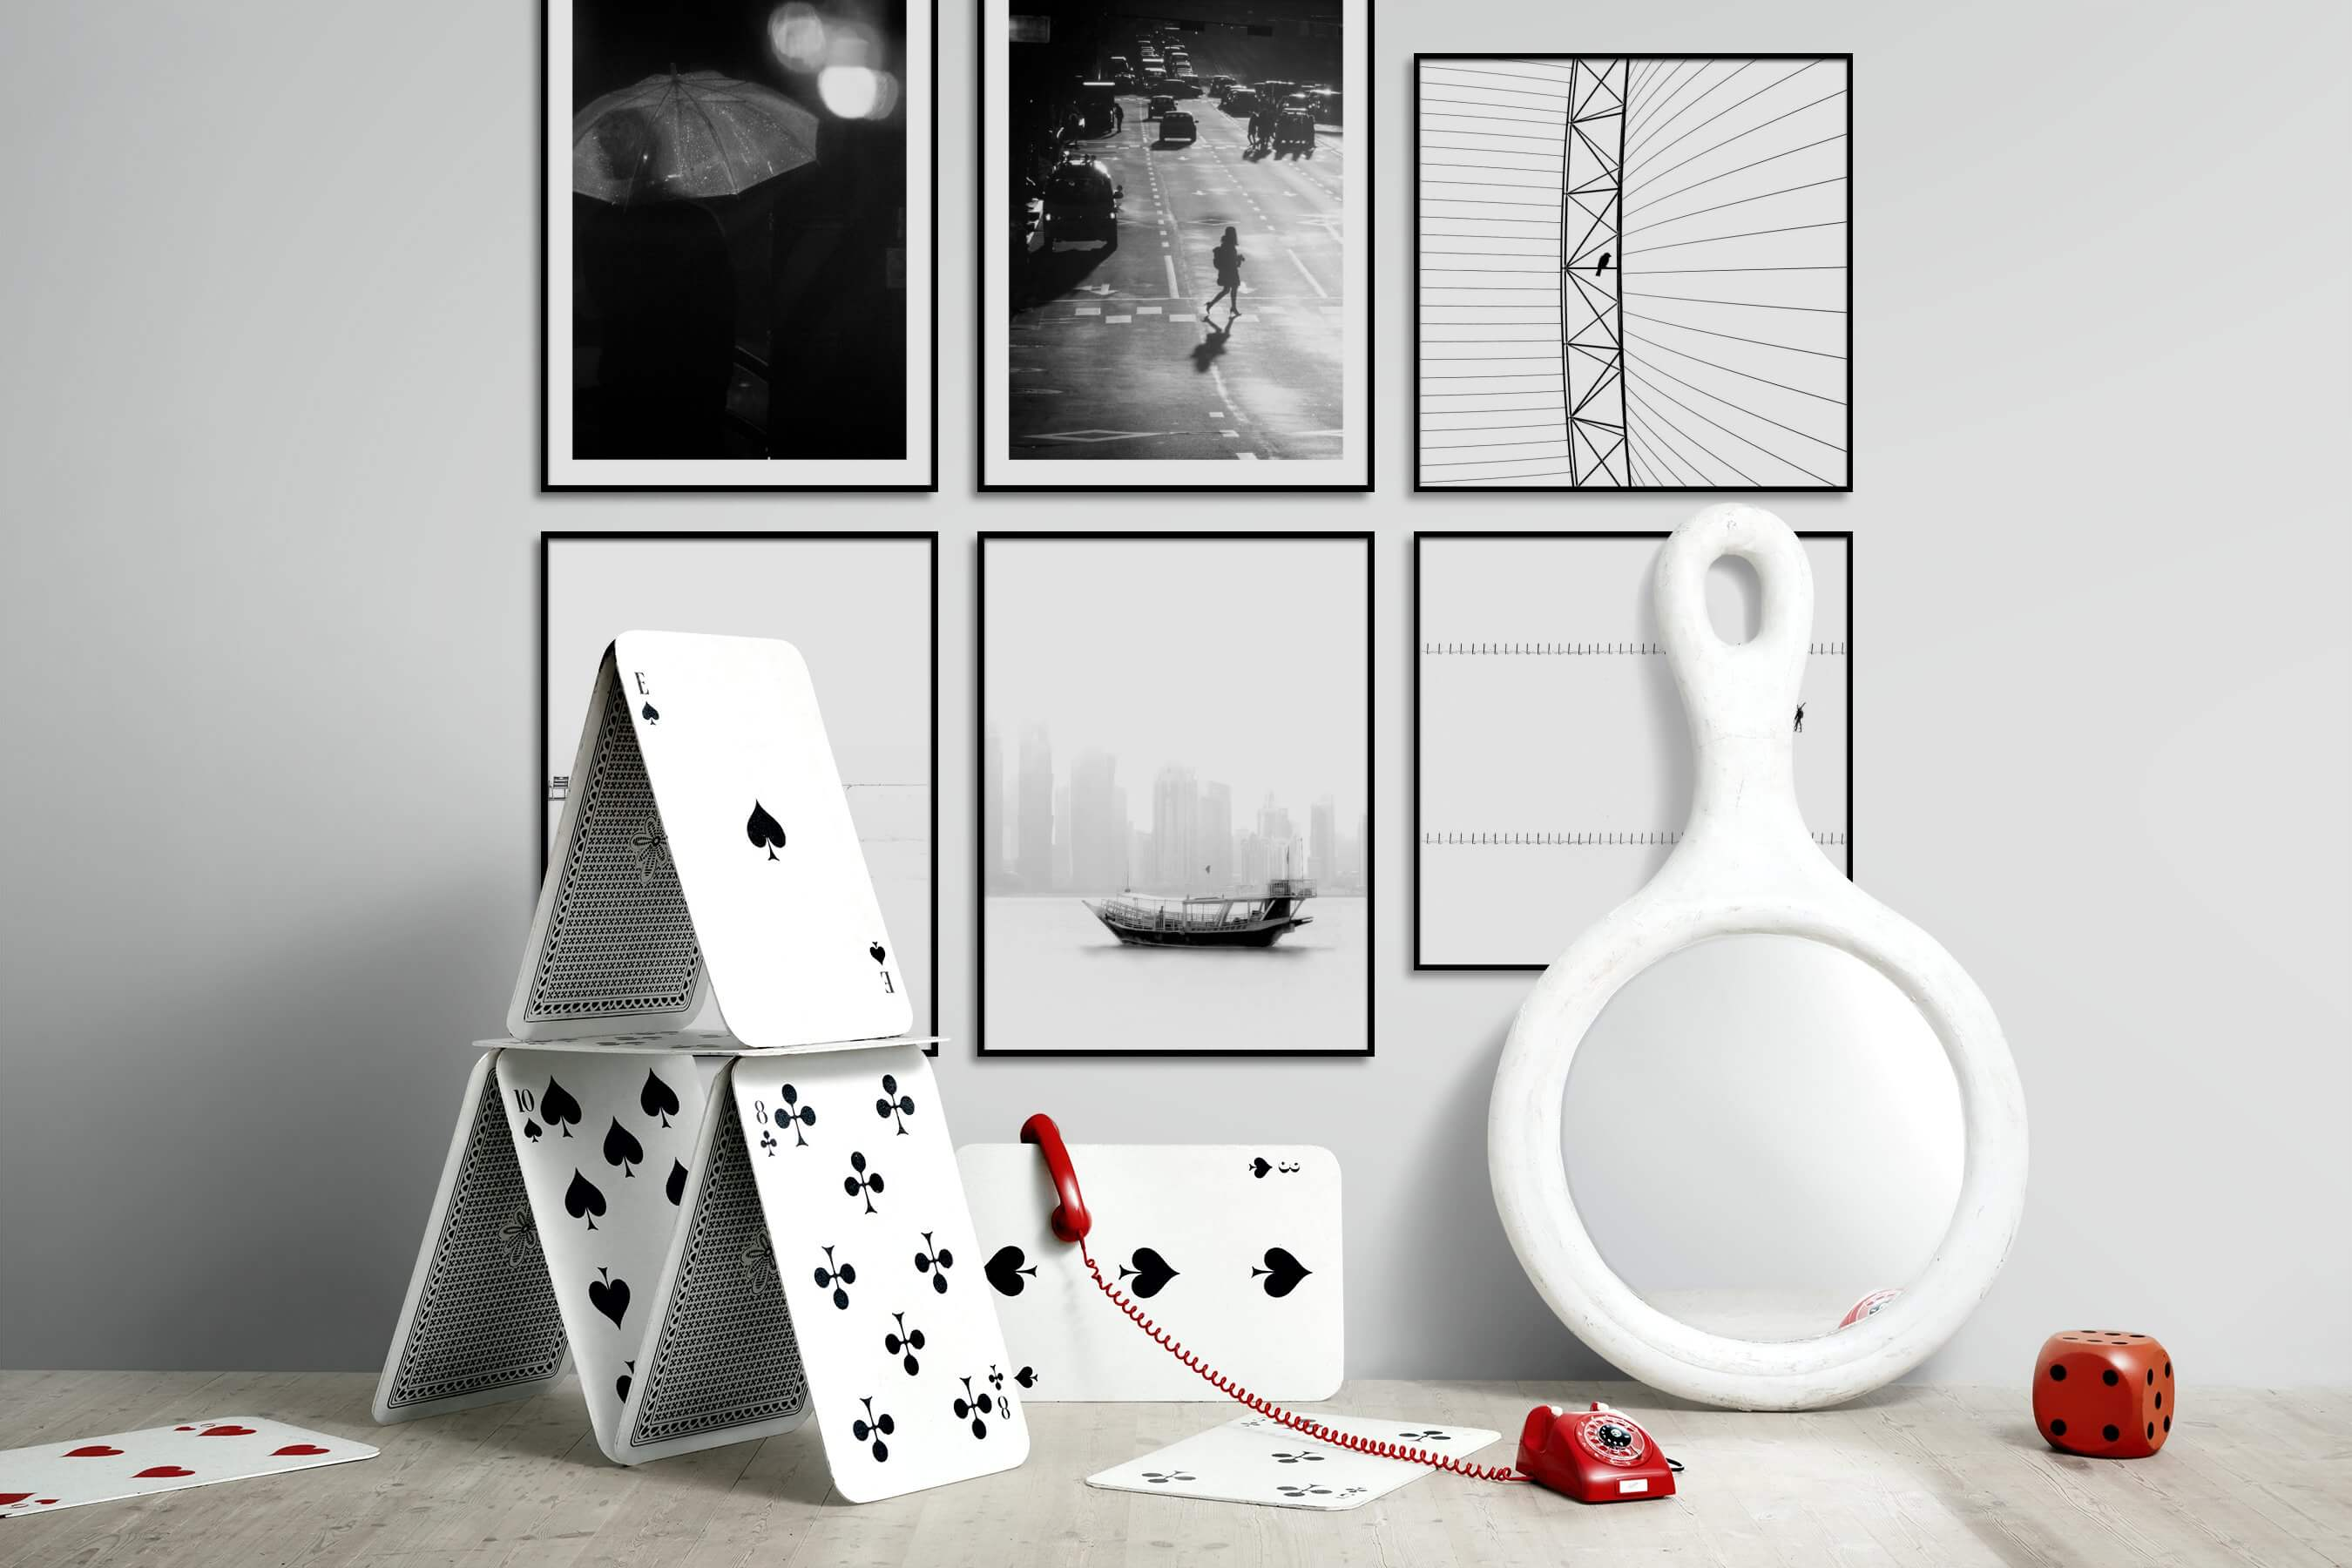 Gallery wall idea with six framed pictures arranged on a wall depicting Black & White, For the Minimalist, City Life, Bright Tones, and For the Moderate